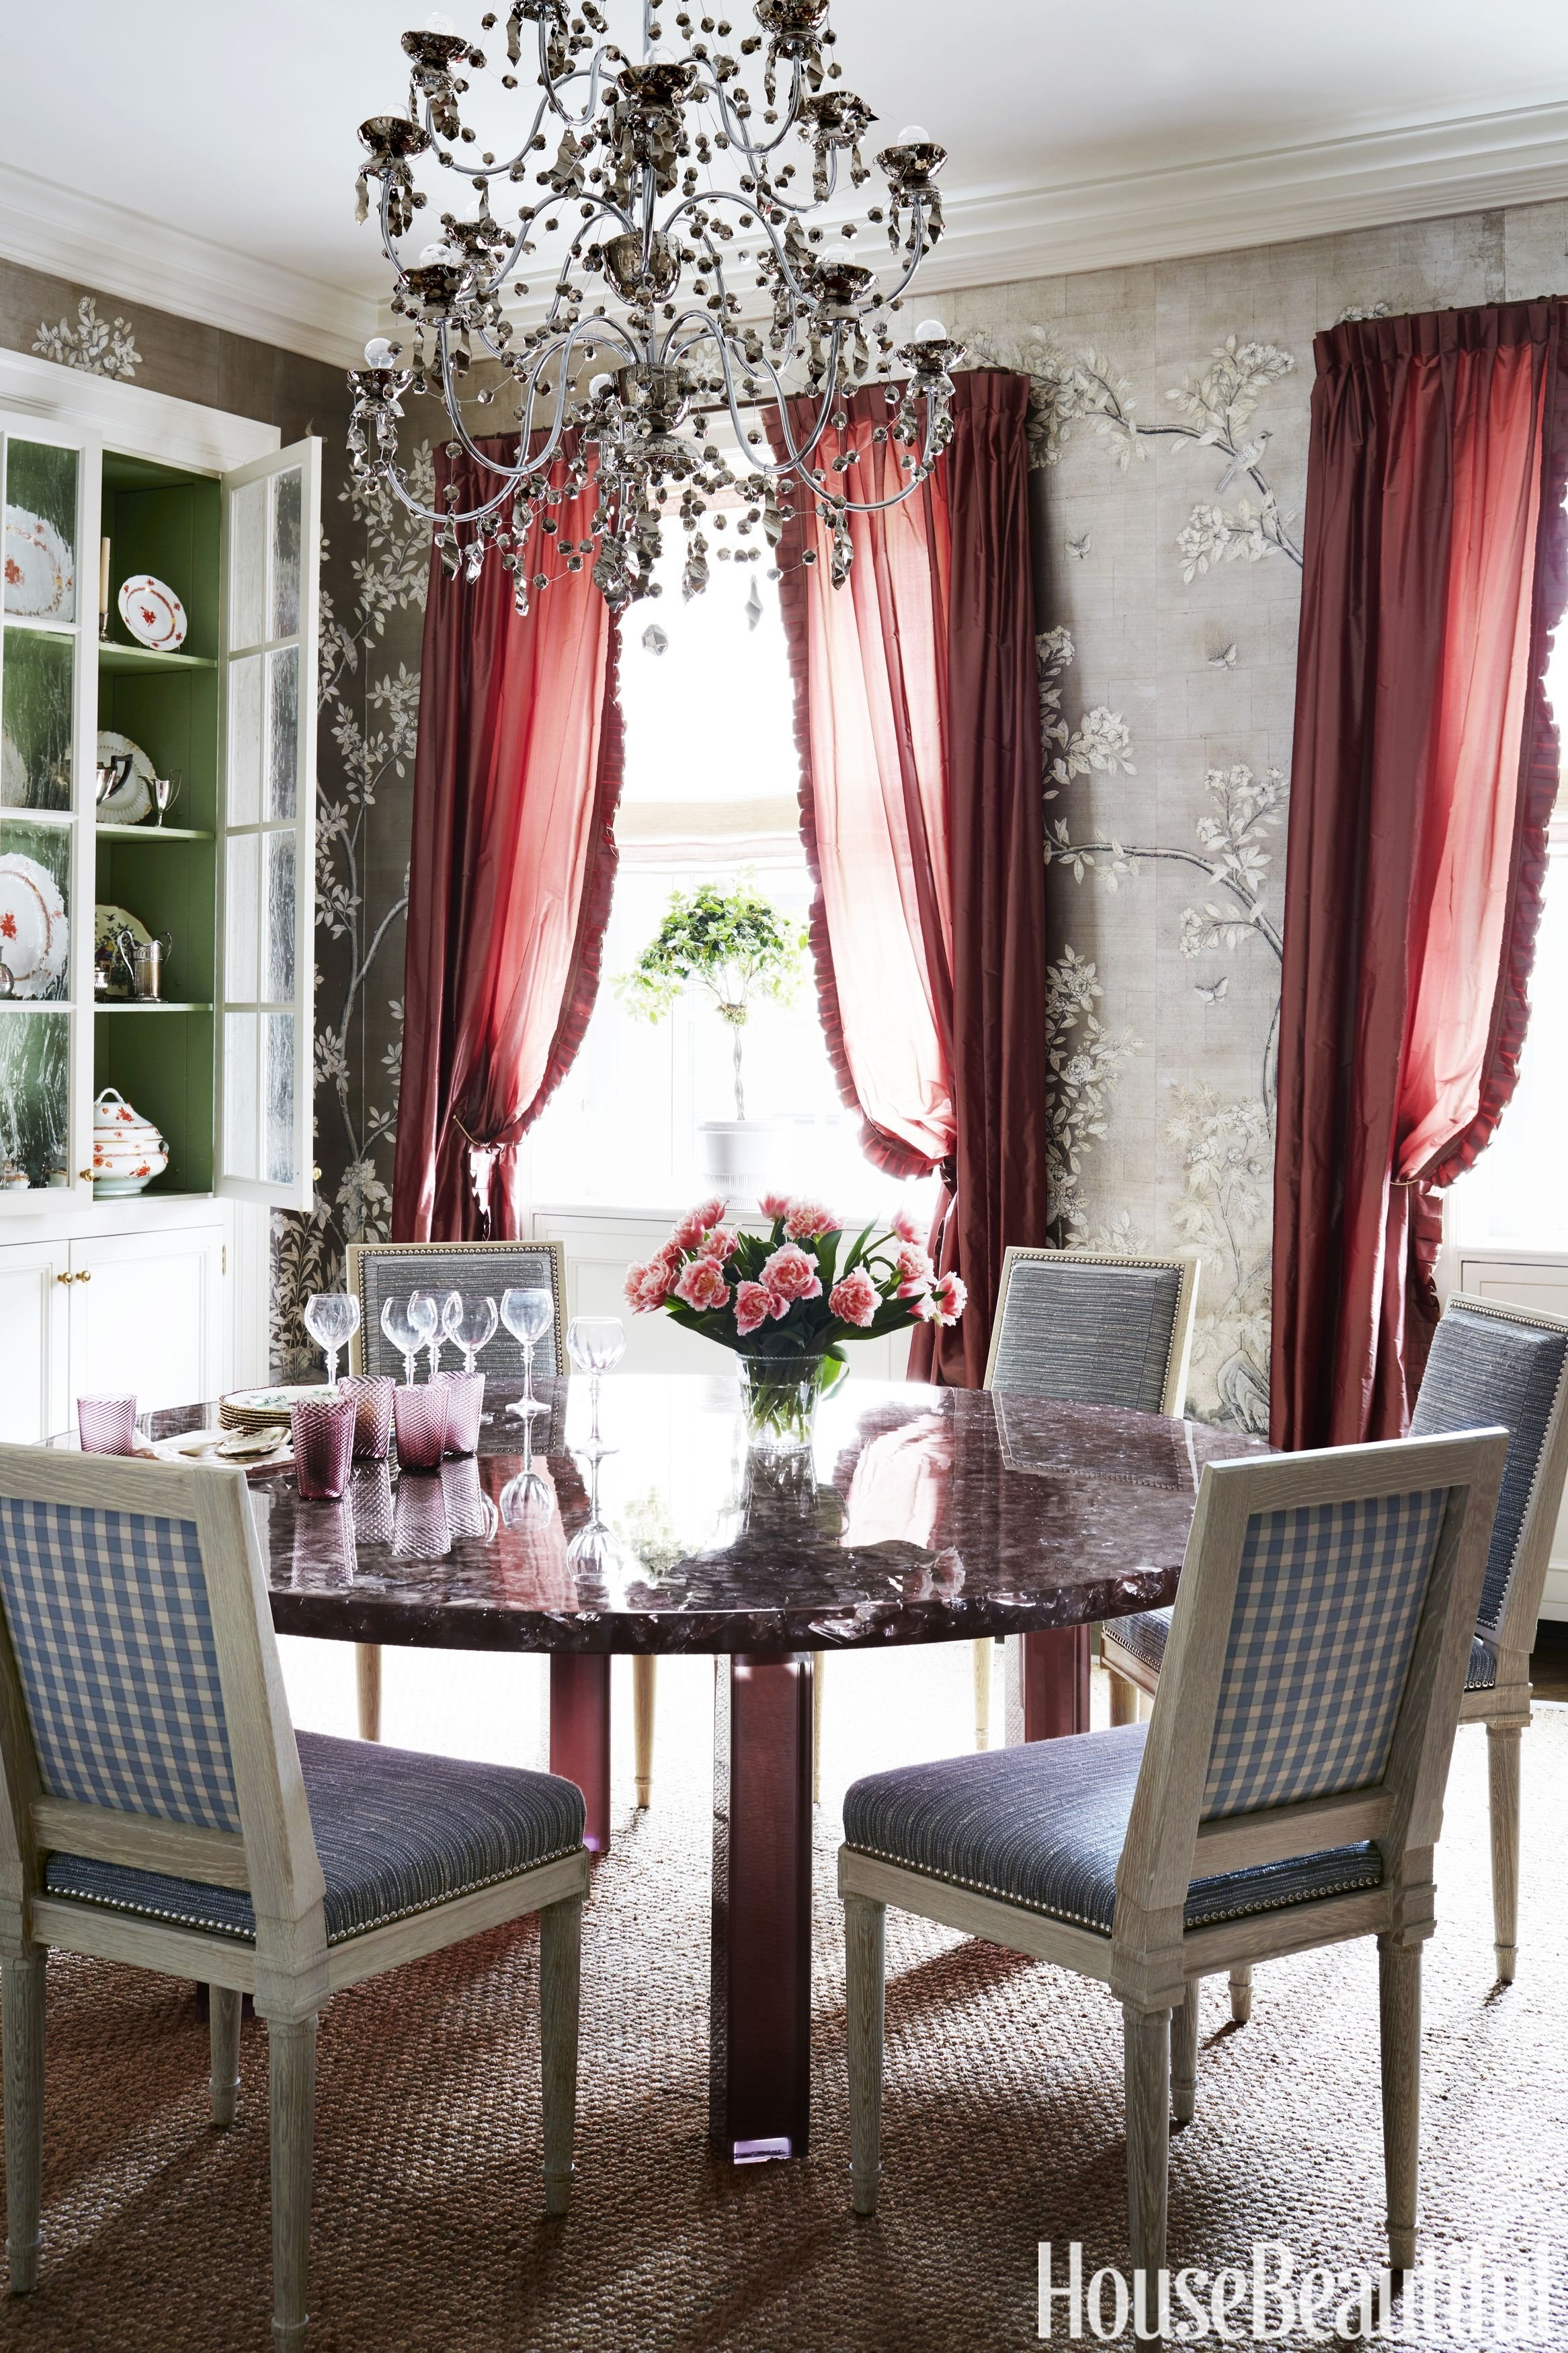 10 Unique Dining Room Window Treatment Ideas 60 modern window treatment ideas best curtains and window coverings 2021